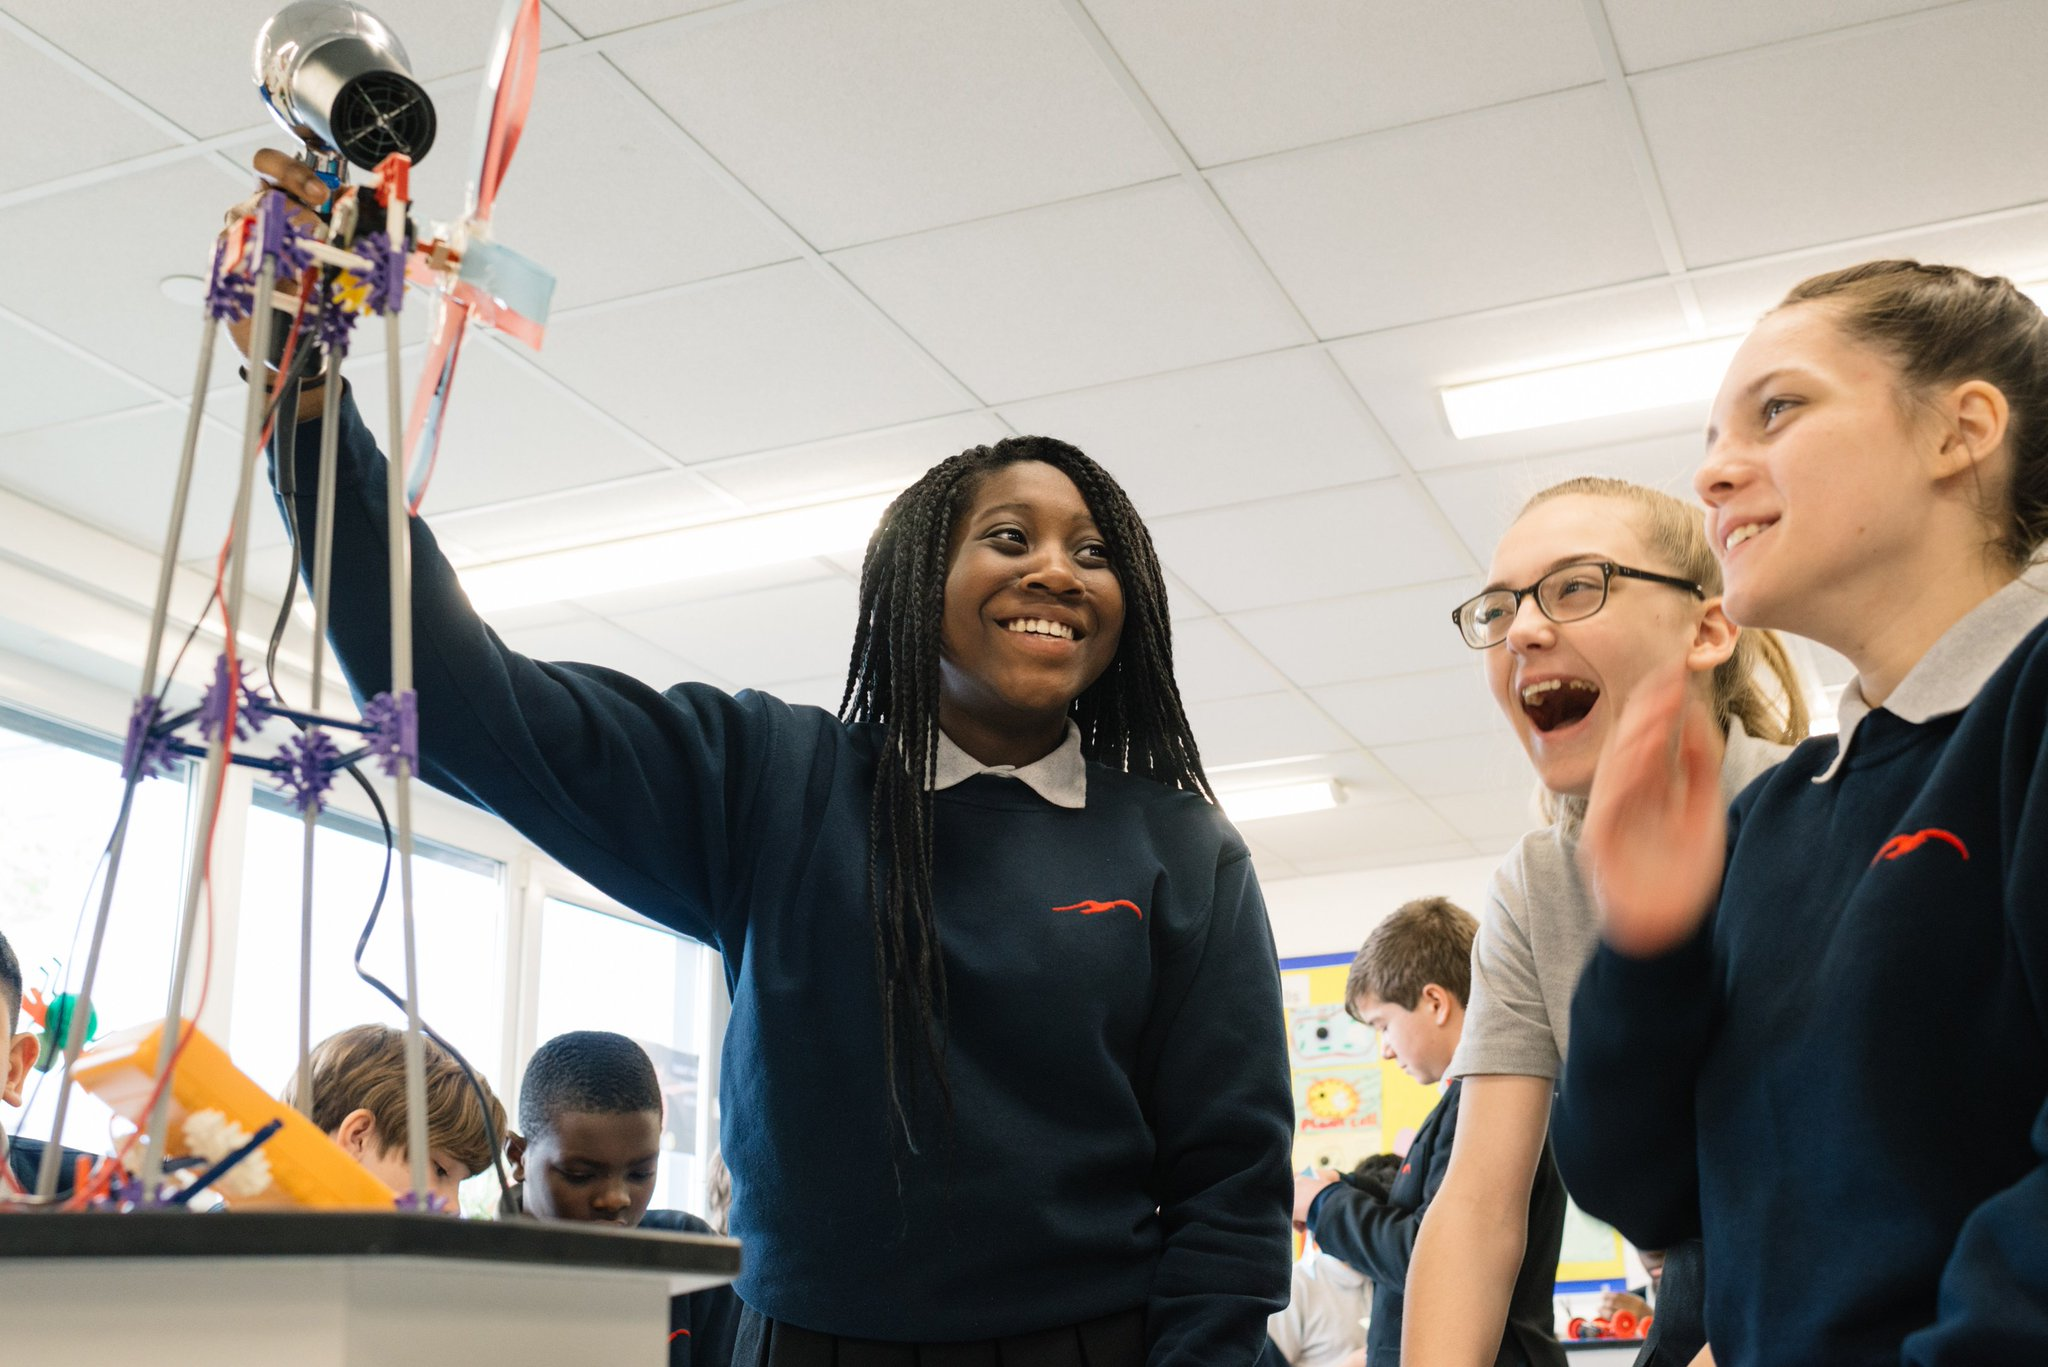 We're excited to be taking part in #TEWeek16 this week with @Tomorrows_Eng.  Find out more and join in! https://t.co/KJ6bMxpn4u https://t.co/Qm8MhDRcnn